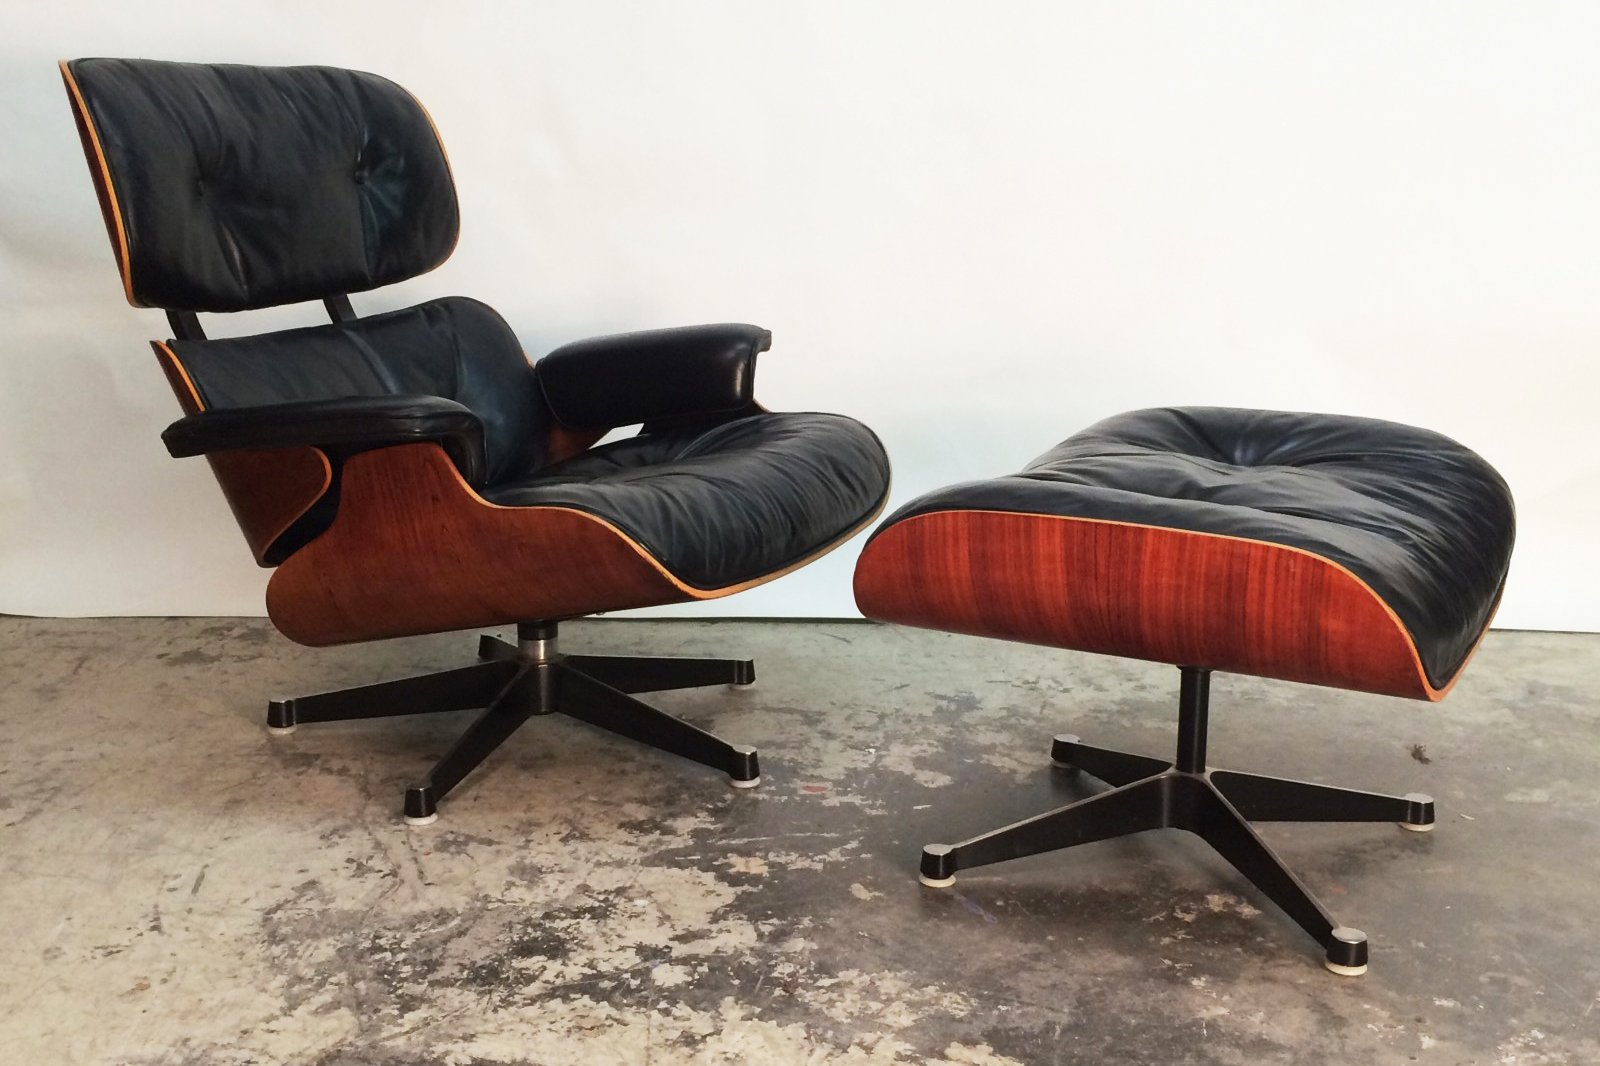 Charles Eames Lounge Chair Charles And Ray Eames